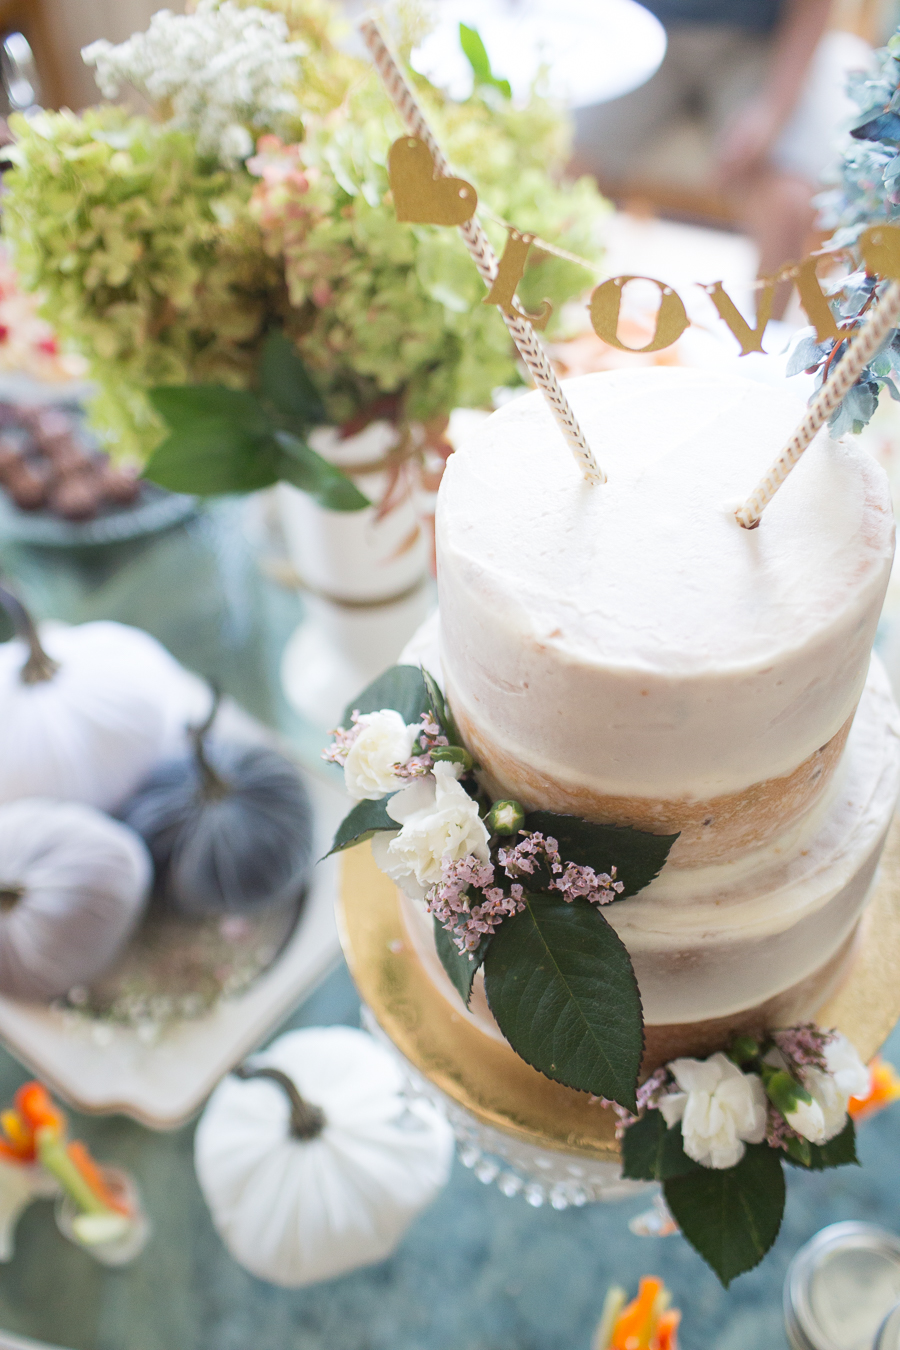 Beautiful Fall Bridal Shower Ideas fall bridal shower cake on a white cake stand surrounded by velvet pumpkins and hydrangeas